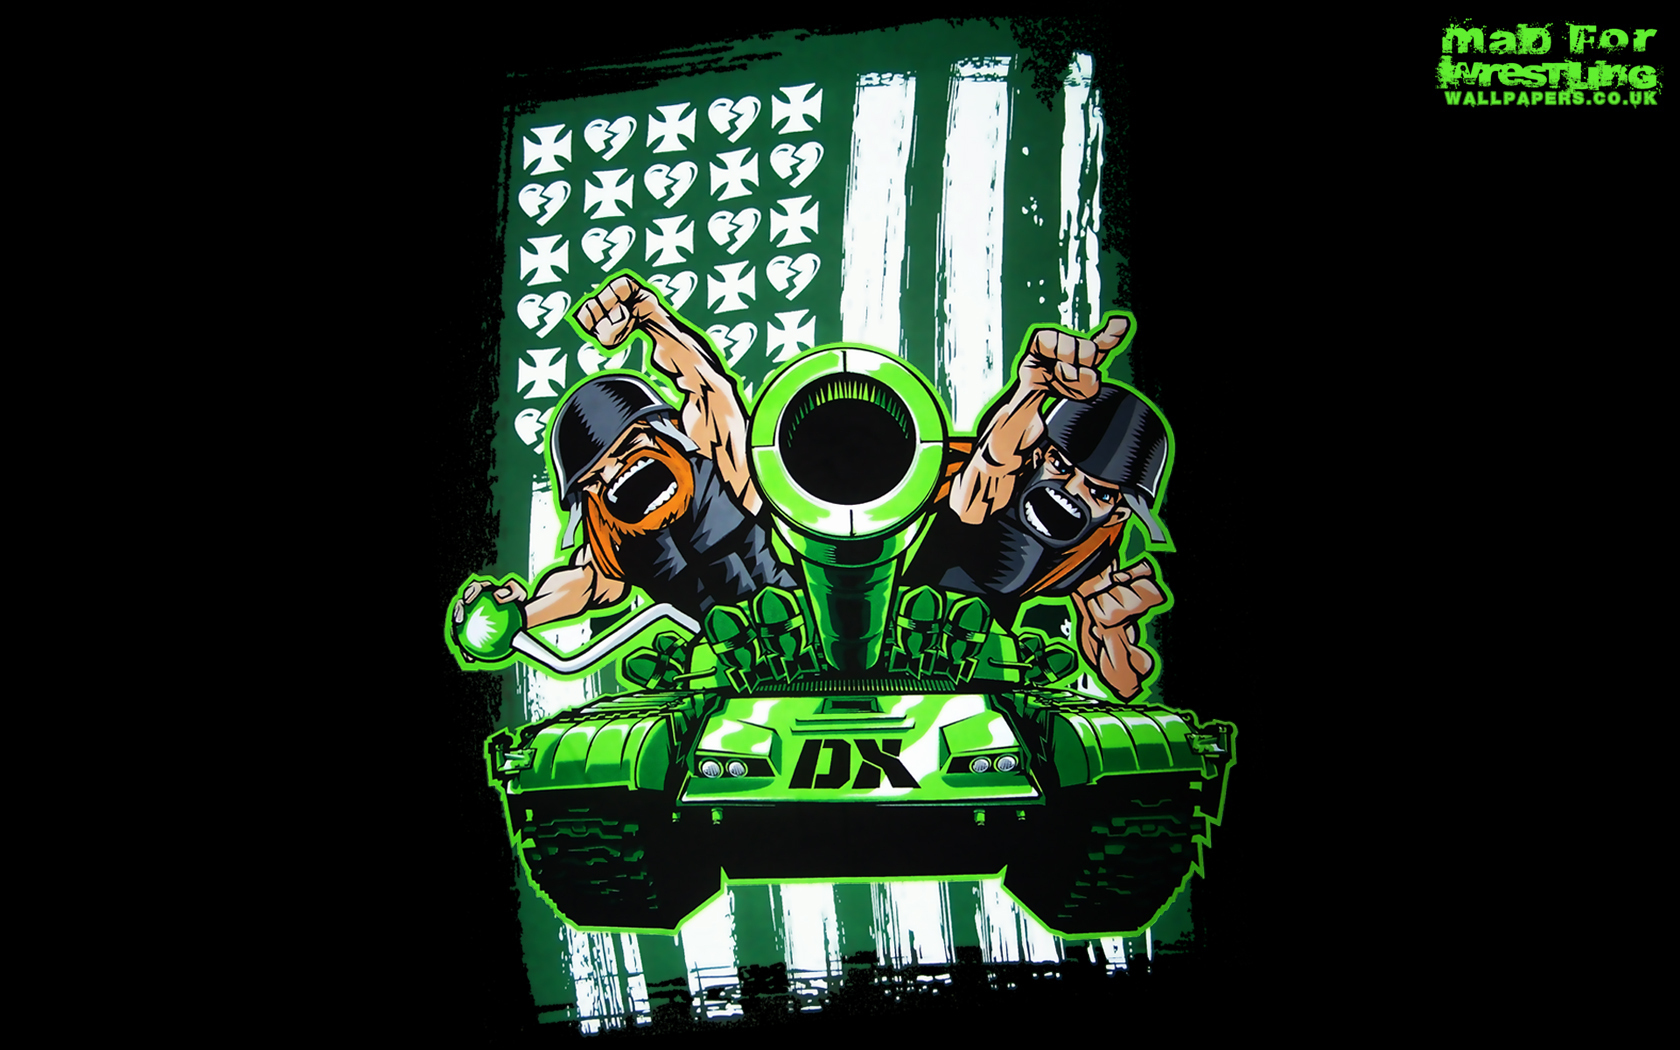 Offenderman420 Images DX Army D Generation X 14626096 1680 1050 HD Wallpaper And Background Photos